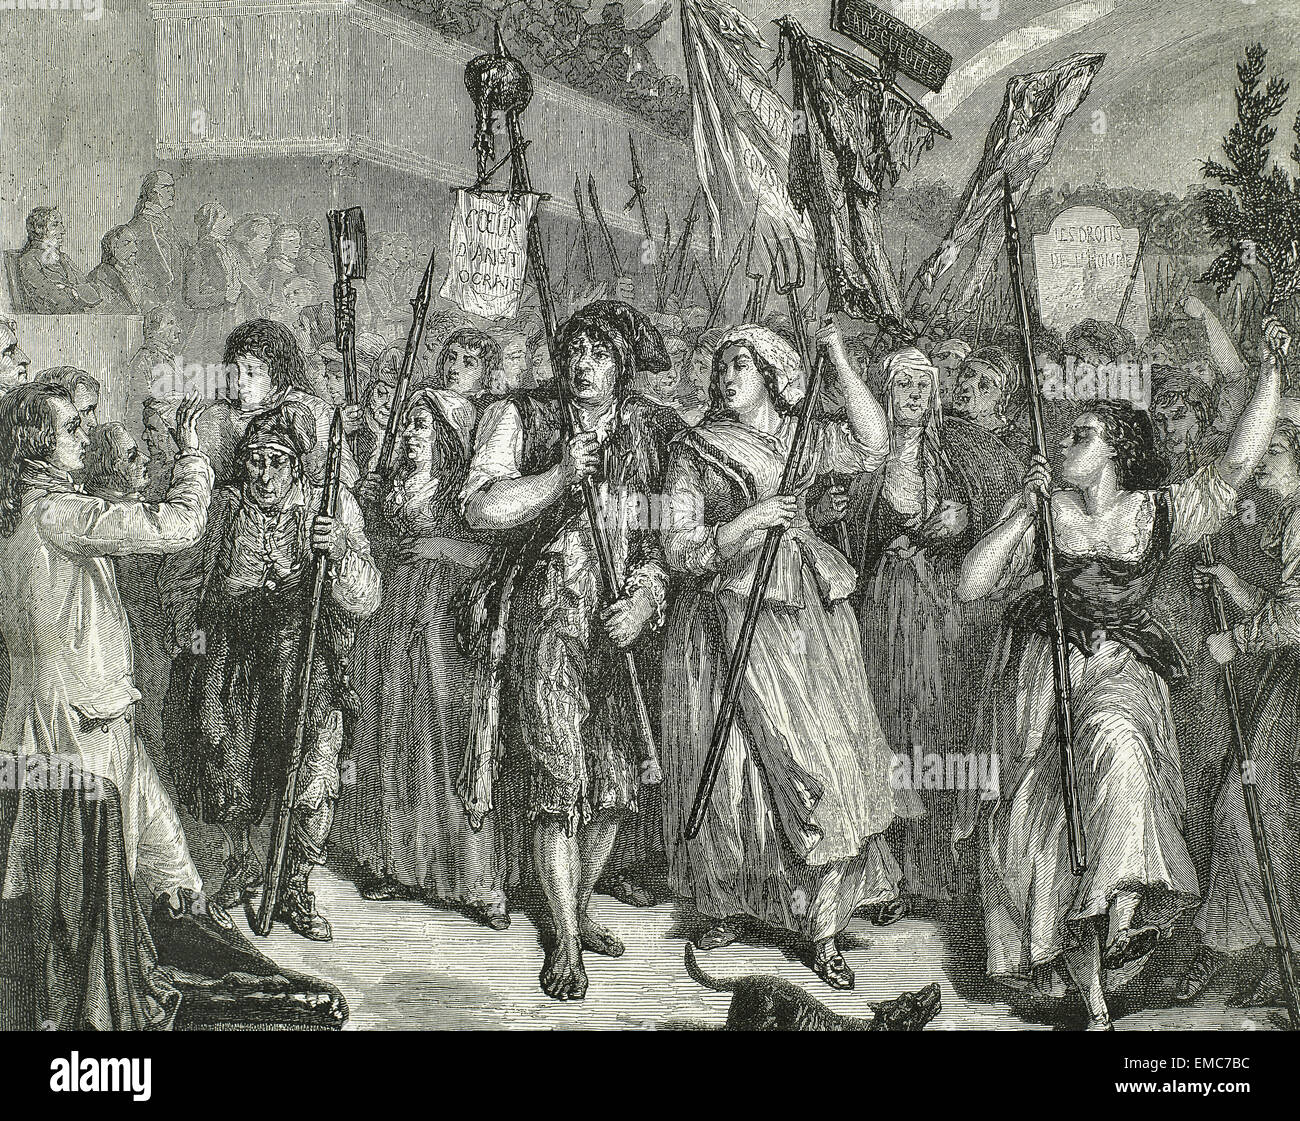 sparknotes the french revolution 17891799 brief overview - HD1300×1121